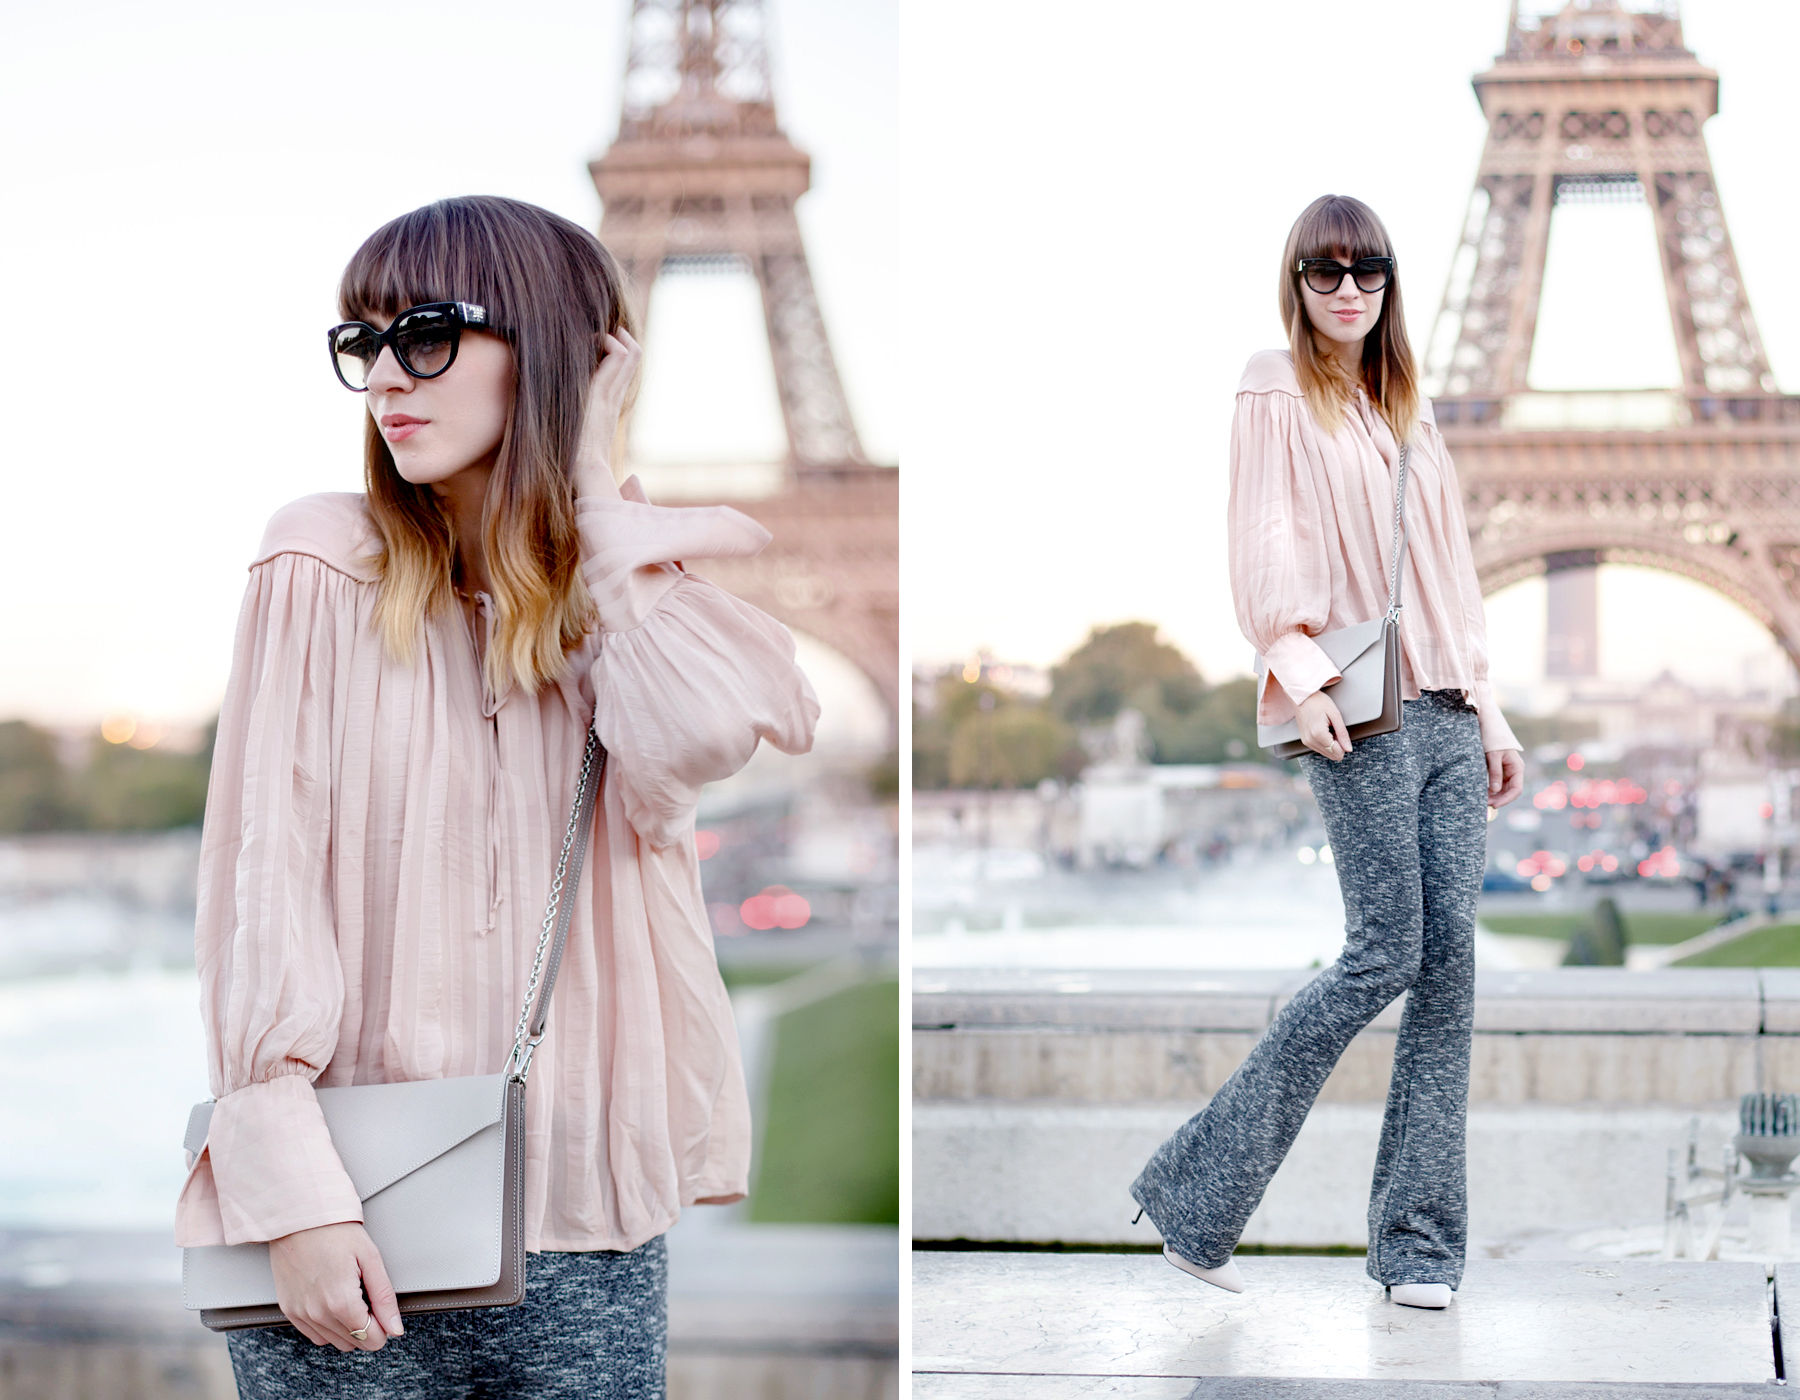 tour eiffel paris pfw fashionweek lancaster paris element bag peach bright outfit ootd look lookbook travel travelblogger inspiration autumn france french fashion blogger cats & dogs fashionblog ricarda schernus 5